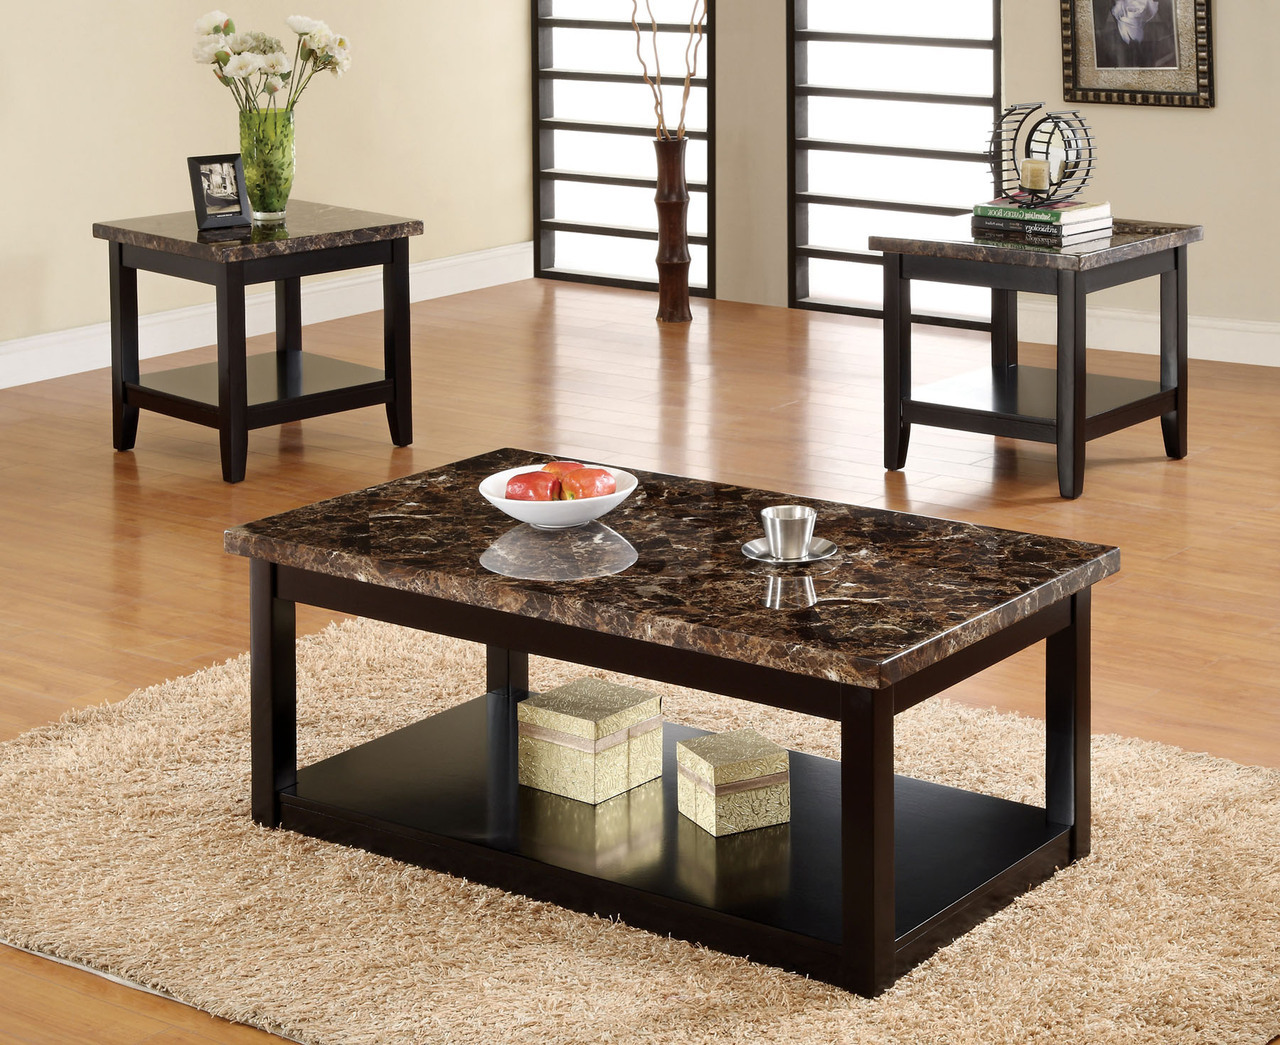 lawndale black solid wood faux marble top table coffee end tables set full stanley furniture console dark gray nightstand jojo gaines italian bedroom sets making pallet andalusia